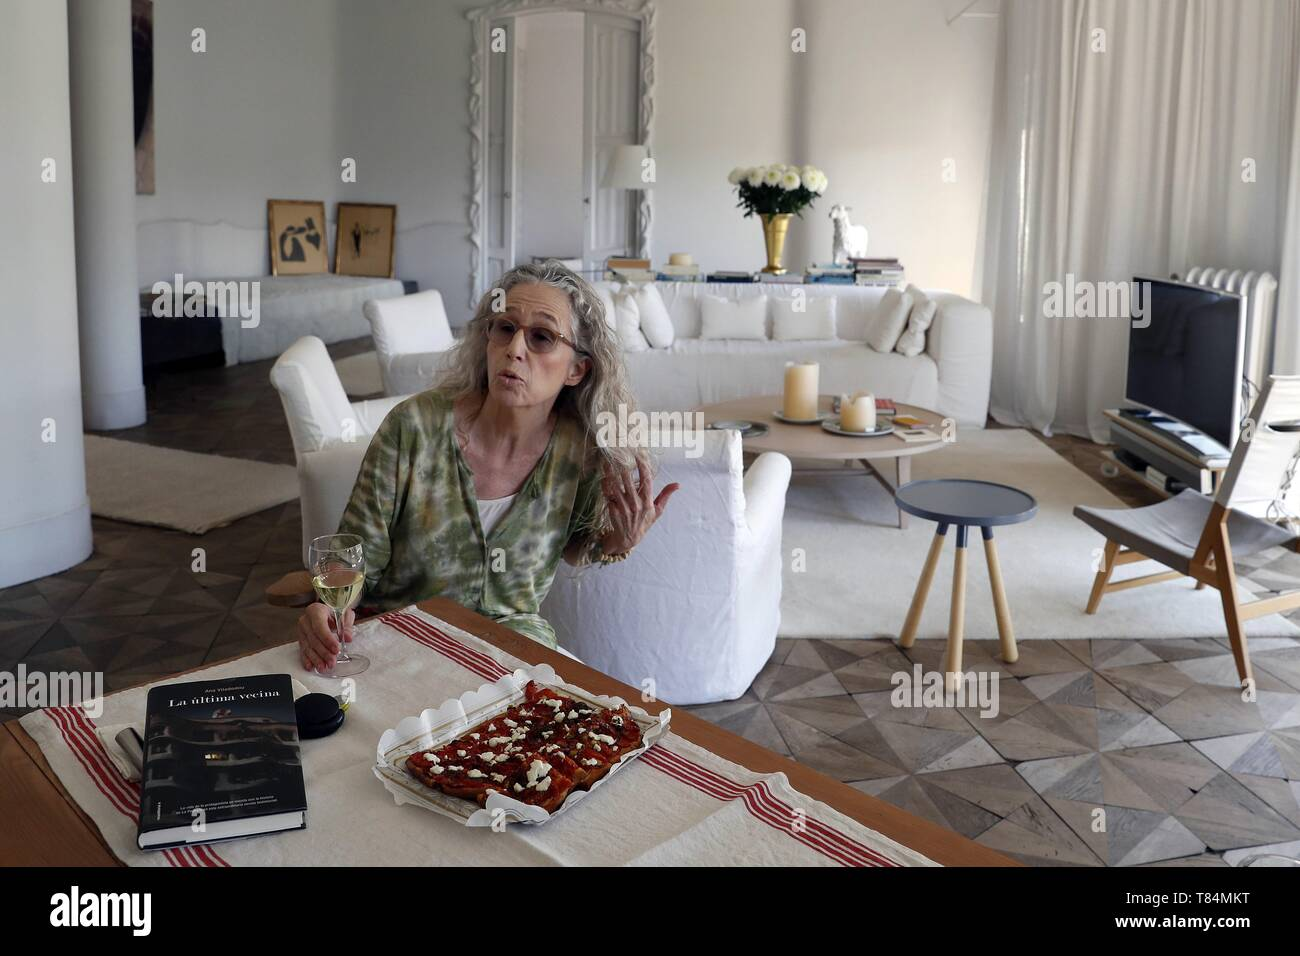 Writer Ana Viladomiu is seen at her home in Gaudi's Pedrera building in Barcelona, Spain, during an interview with Efe news agency 11 May 2019. La Pedrera is one of Barcelona's most emblematic buildings, but for Ana Viladomiu, one of the last three tenants in the building, is her home, something that has inspired her to write her third novel 'La Ultima Vecina' (lit. the last neighbor), a book in which she mixes 'fiction and autofiction'. EFE/ Toni Albir - Stock Image